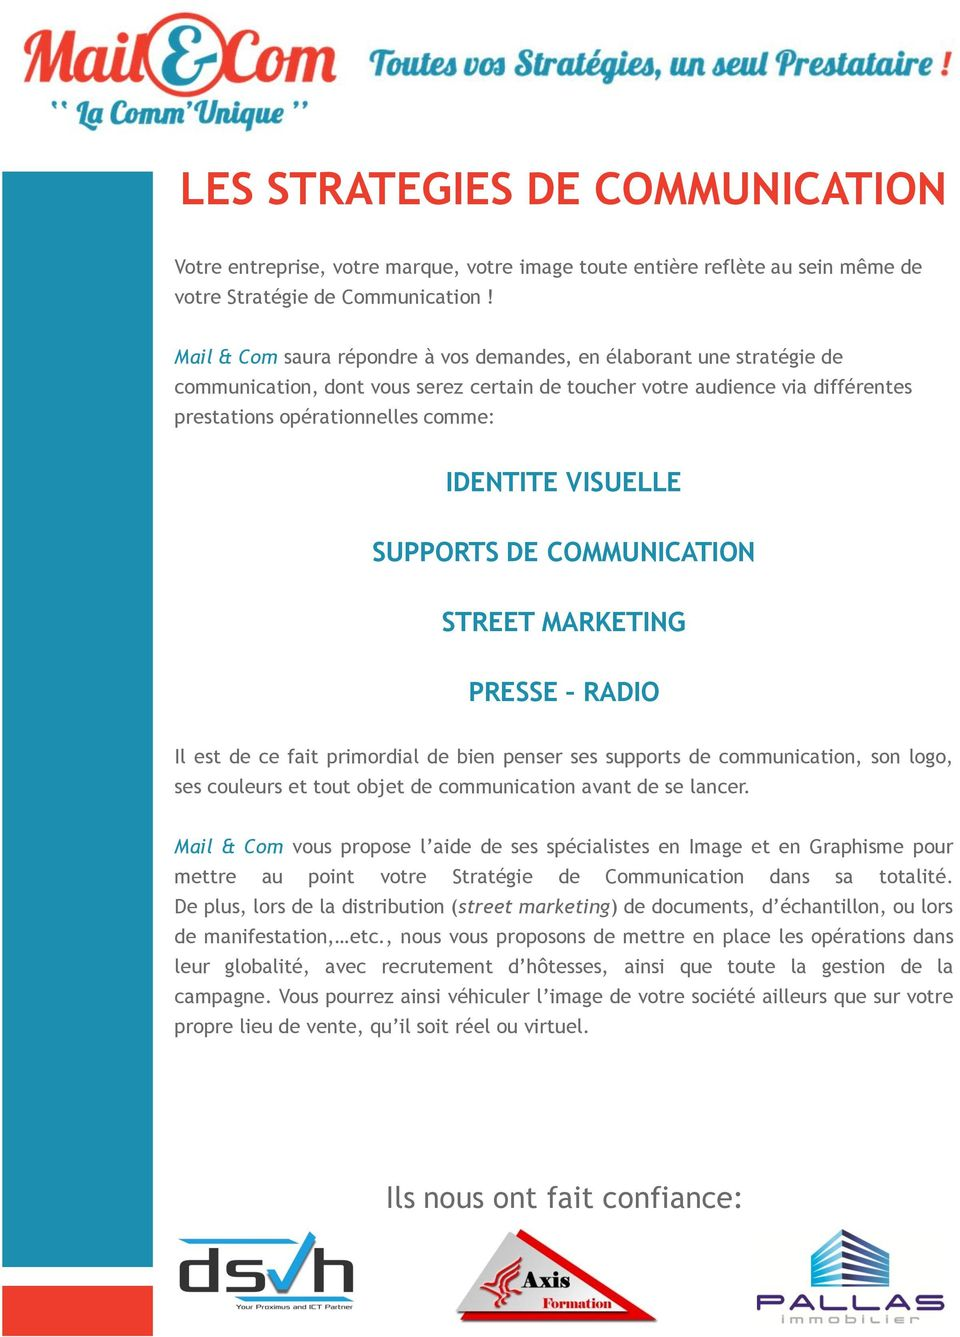 VISUELLE SUPPORTS DE COMMUNICATION STREET MARKETING PRESSE RADIO Il est de ce fait primordial de bien penser ses supports de communication, son logo, ses couleurs et tout objet de communication avant